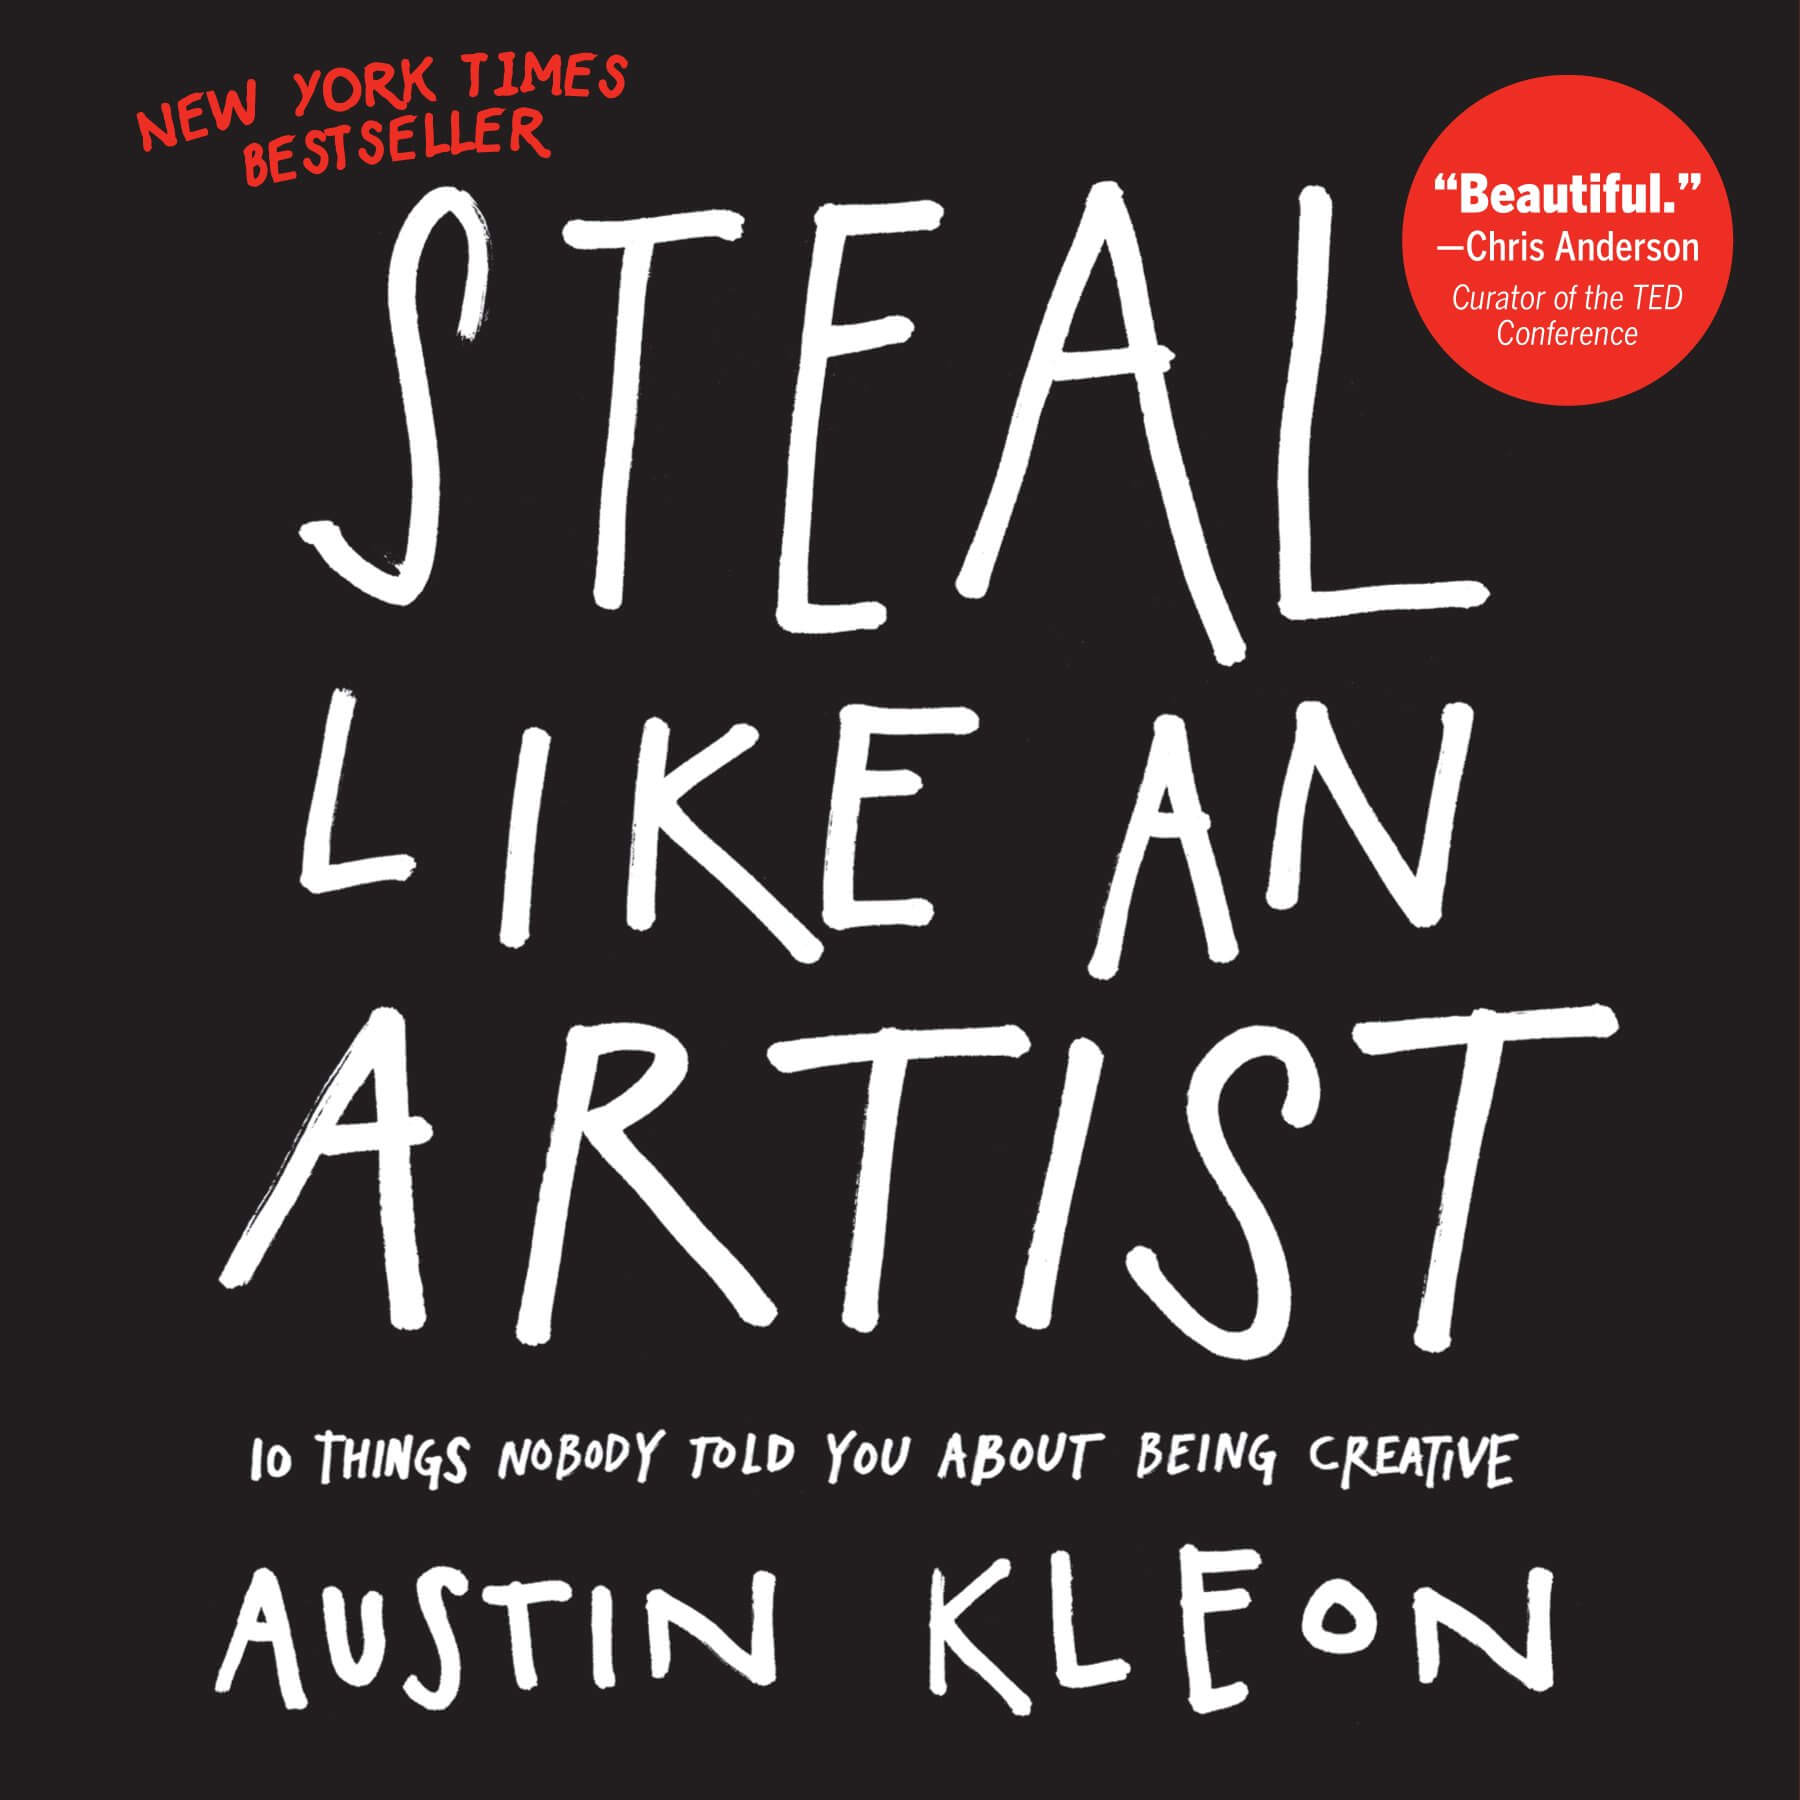 steal-like-an-artist-austin-kleon-book-cover.jpg